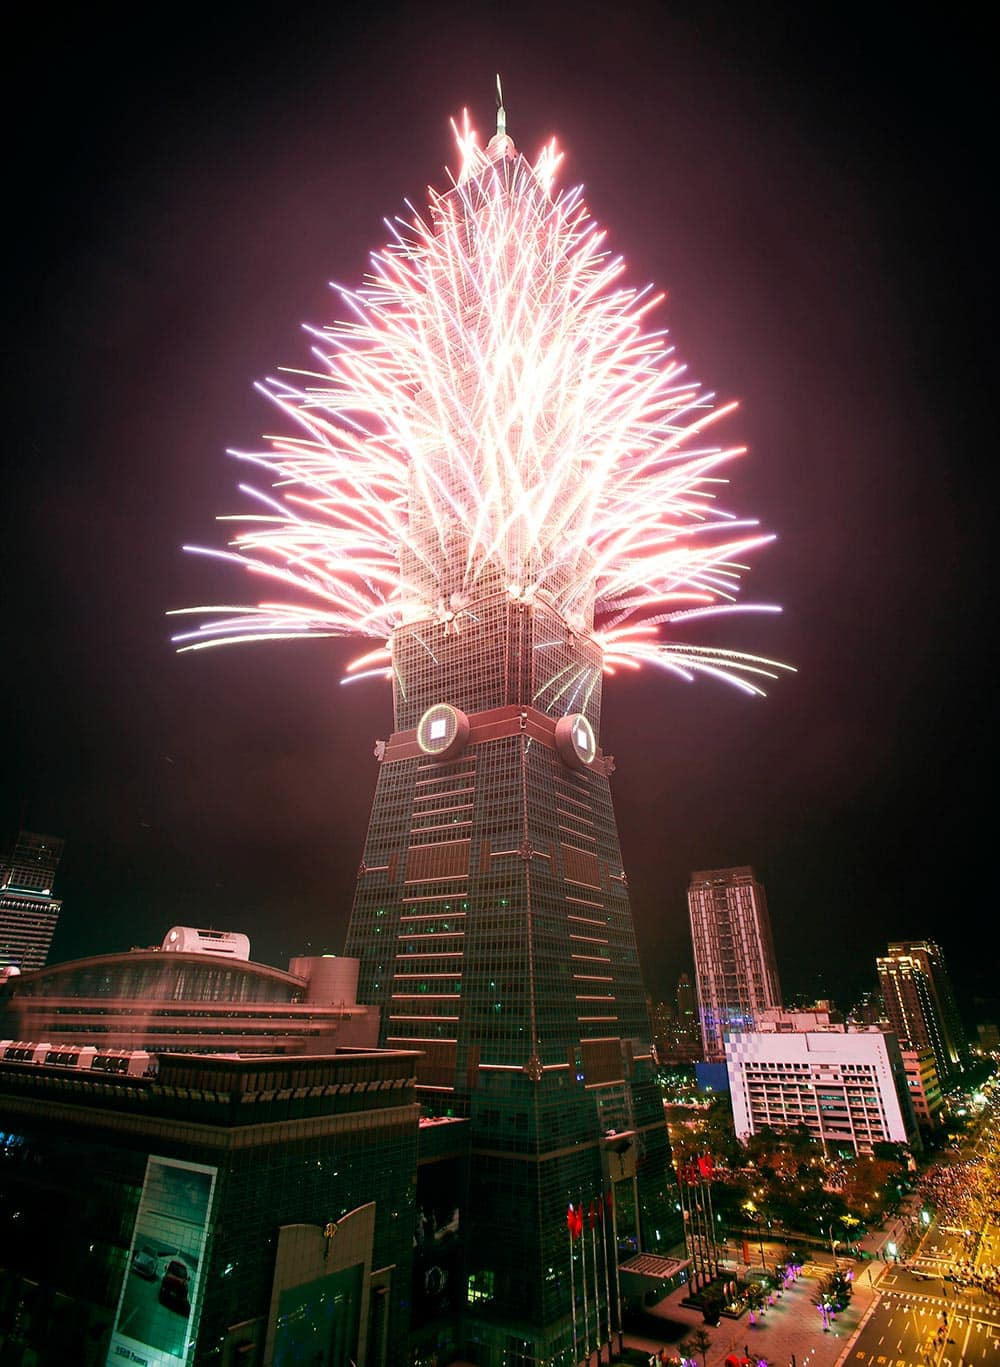 A fireworks display is set off from the Taipei101 skyscraper during New Year's Eve celebrations in Taipei, Taiwan.